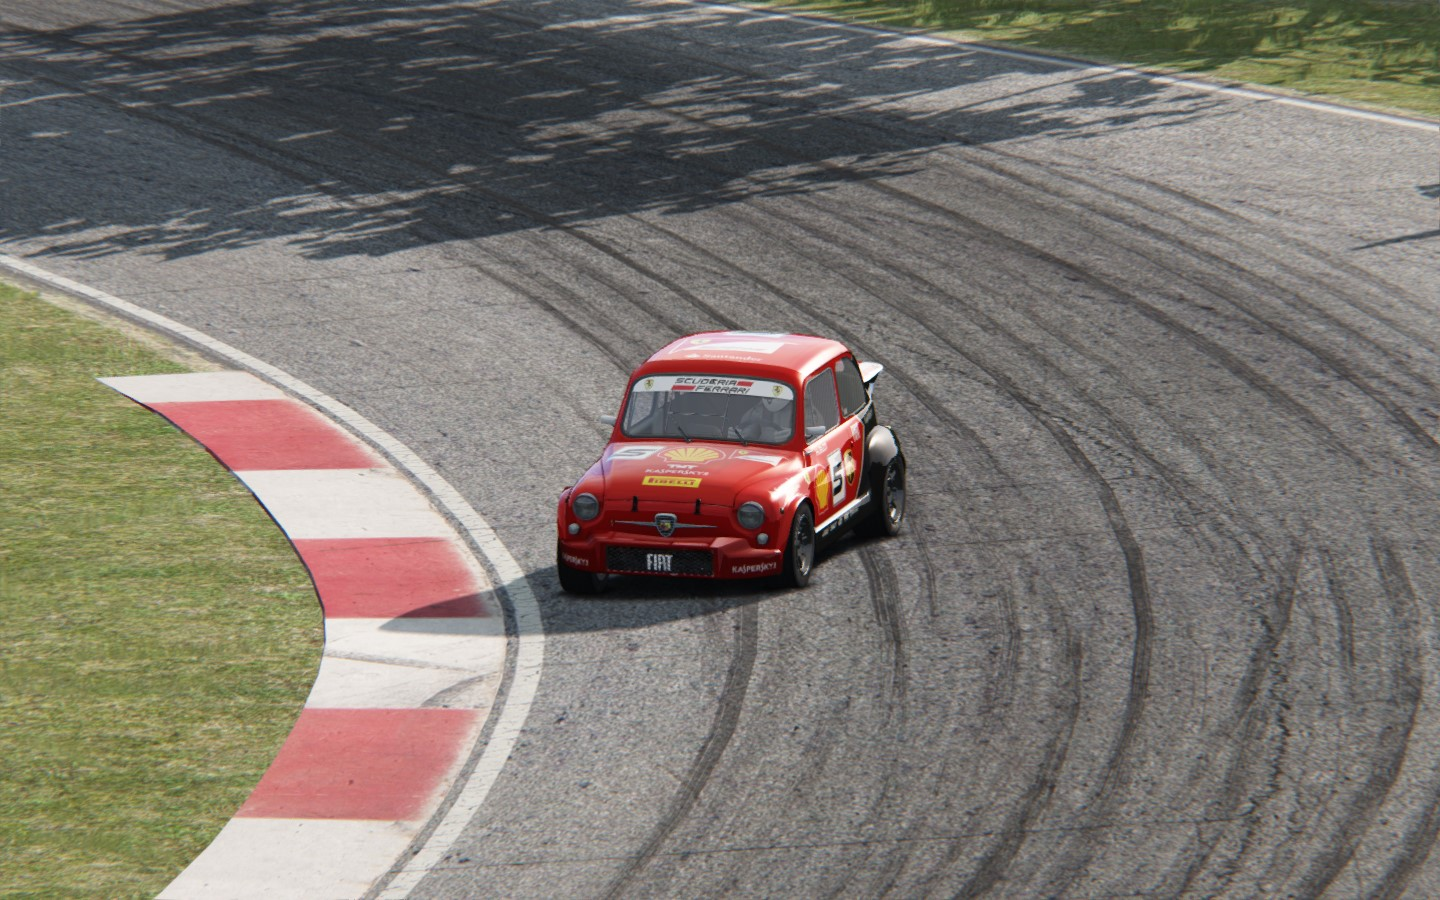 Screenshot_abarth_1000tc_vallelunga_17-1-116-23-38-41.jpg